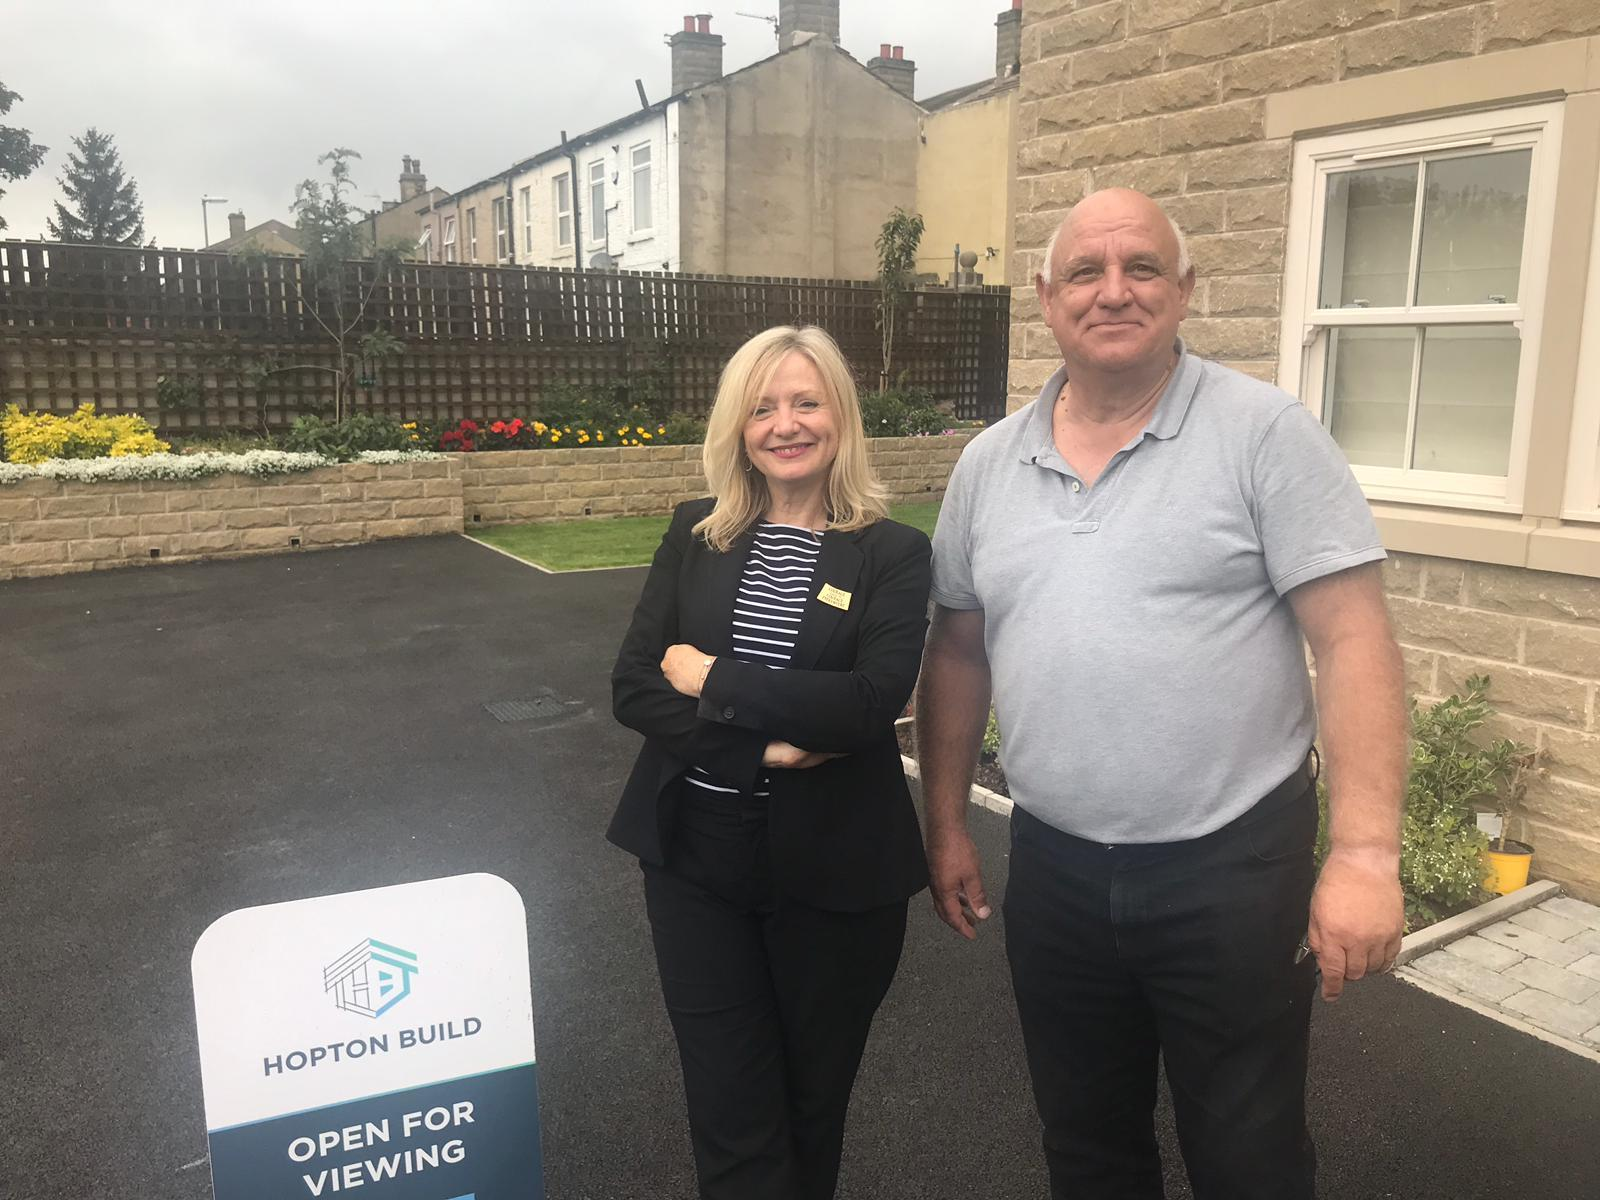 MP backs new way of home ownership at Liversedge site